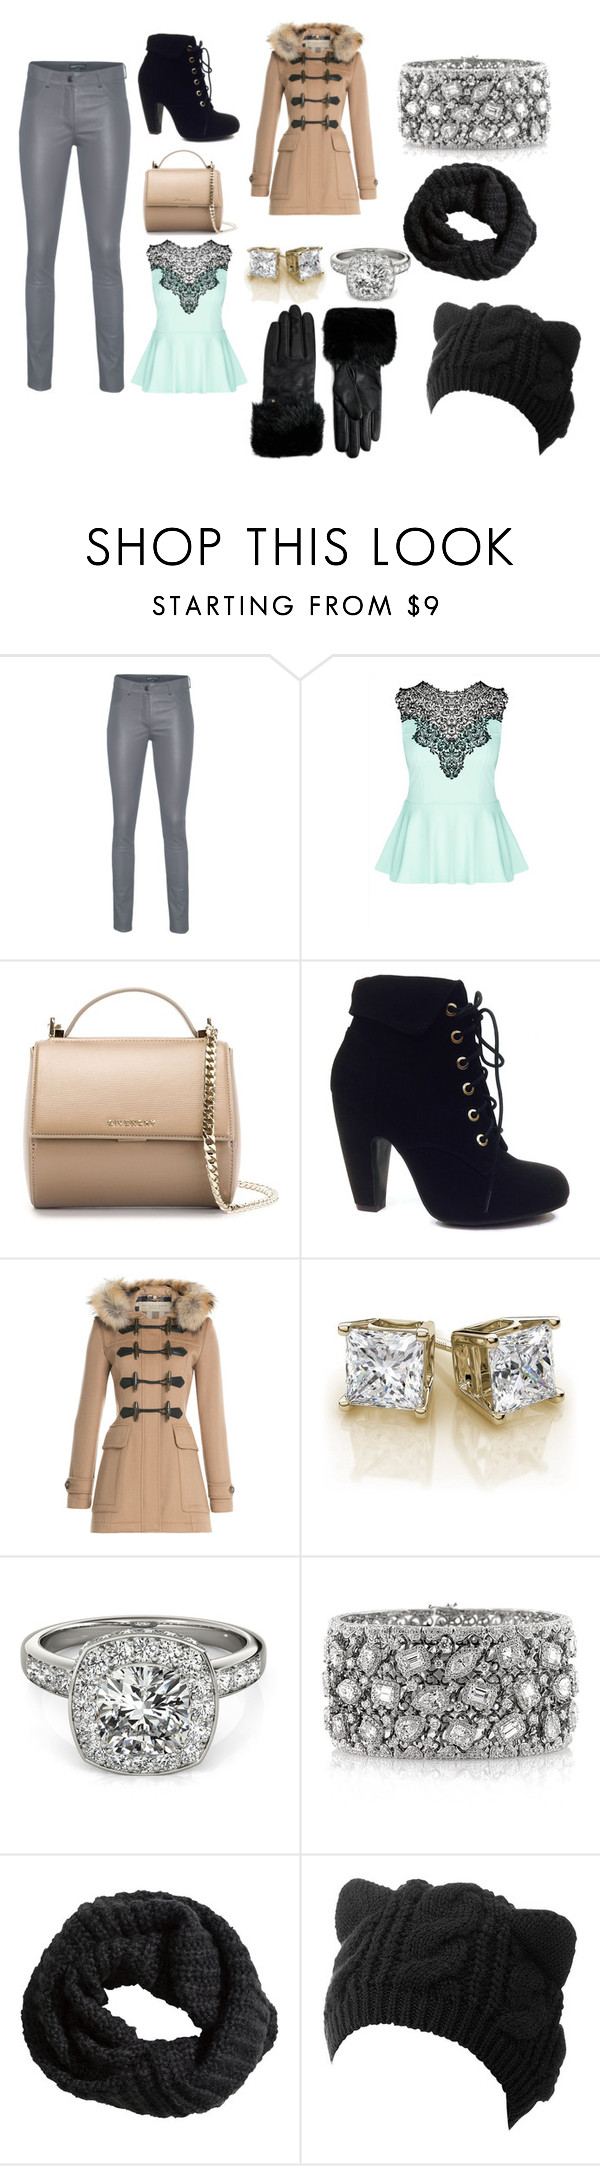 """""""Style Inspiration #12"""" by diva-on ❤ liked on Polyvore featuring Arma, City Chic, Givenchy, Bamboo, Burberry, Allurez, Mark Broumand, H&M and Ted Baker"""